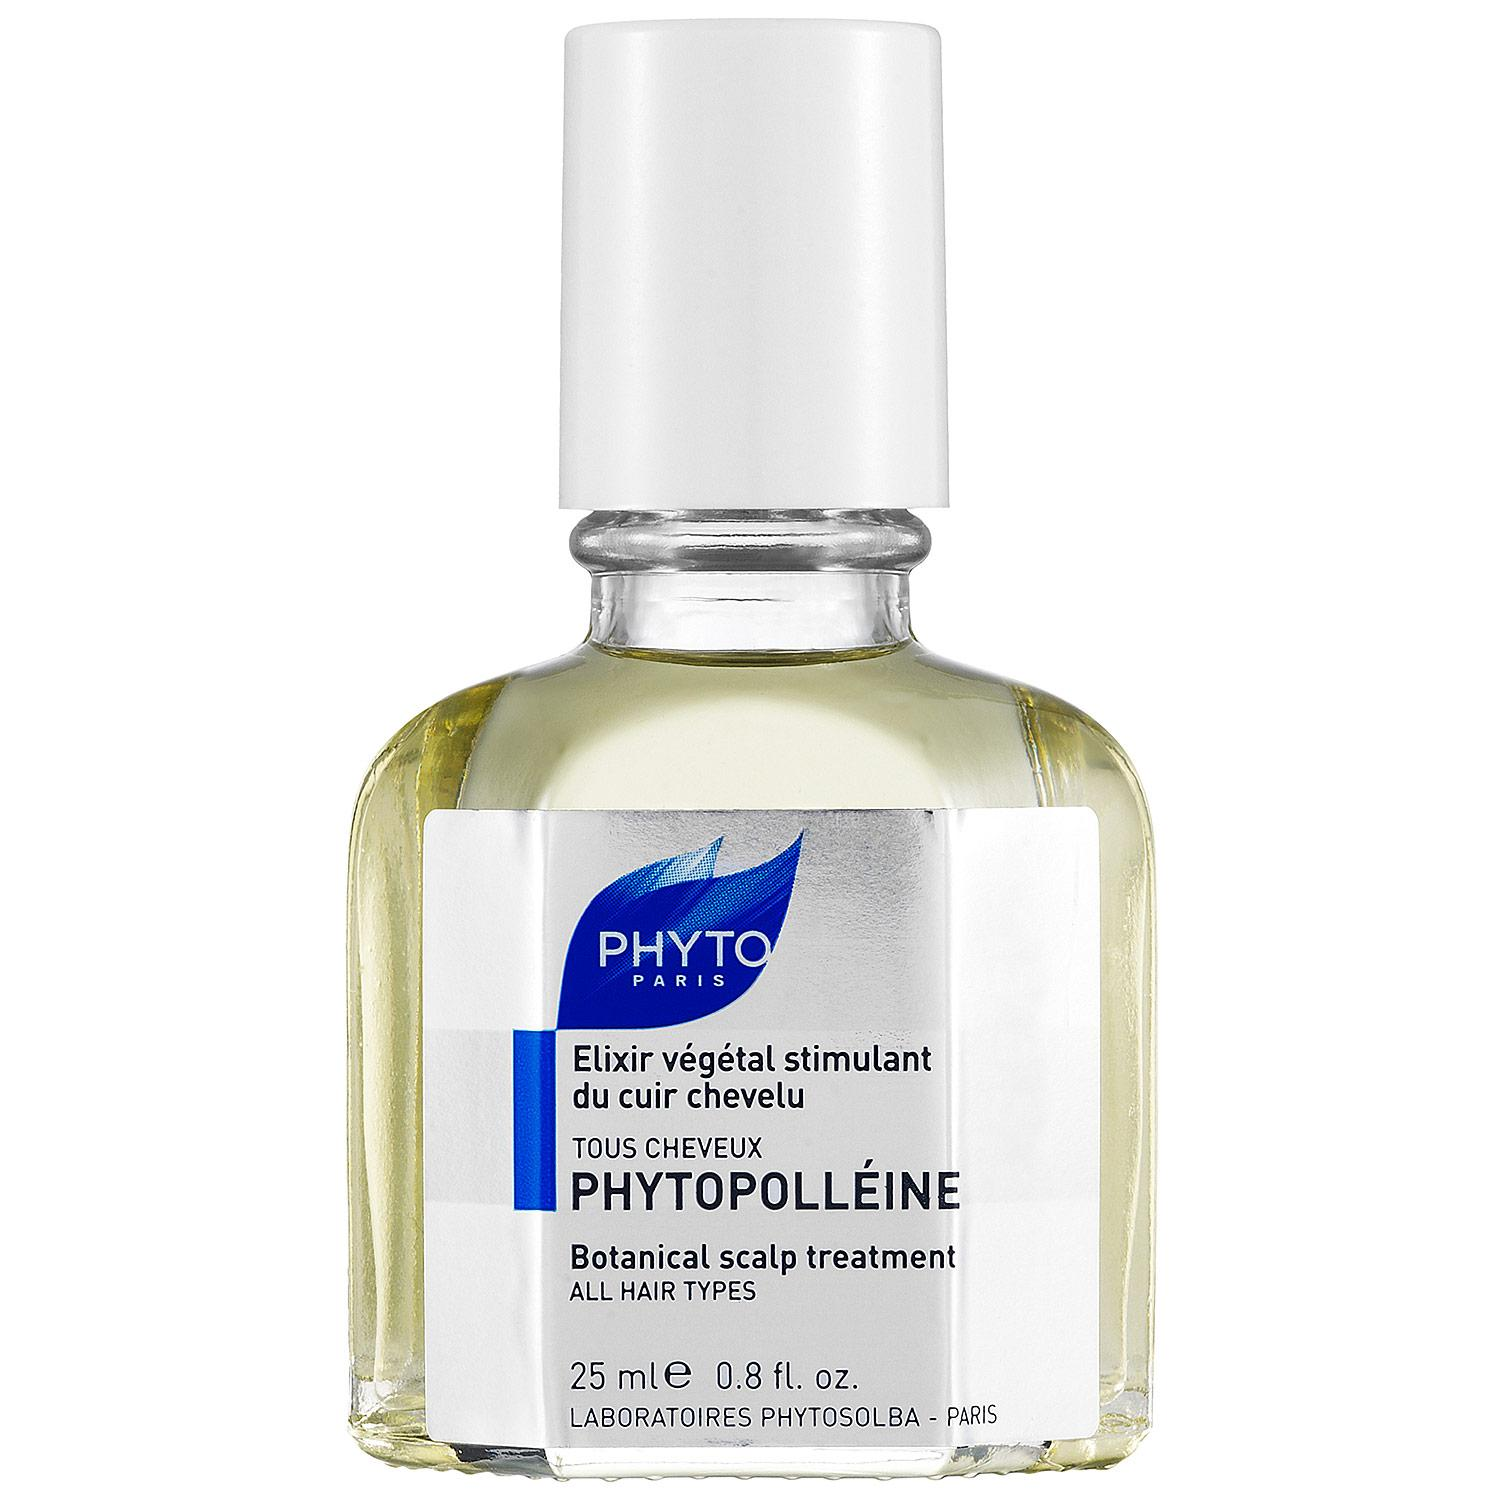 polléine Botanical Scalp Treatment